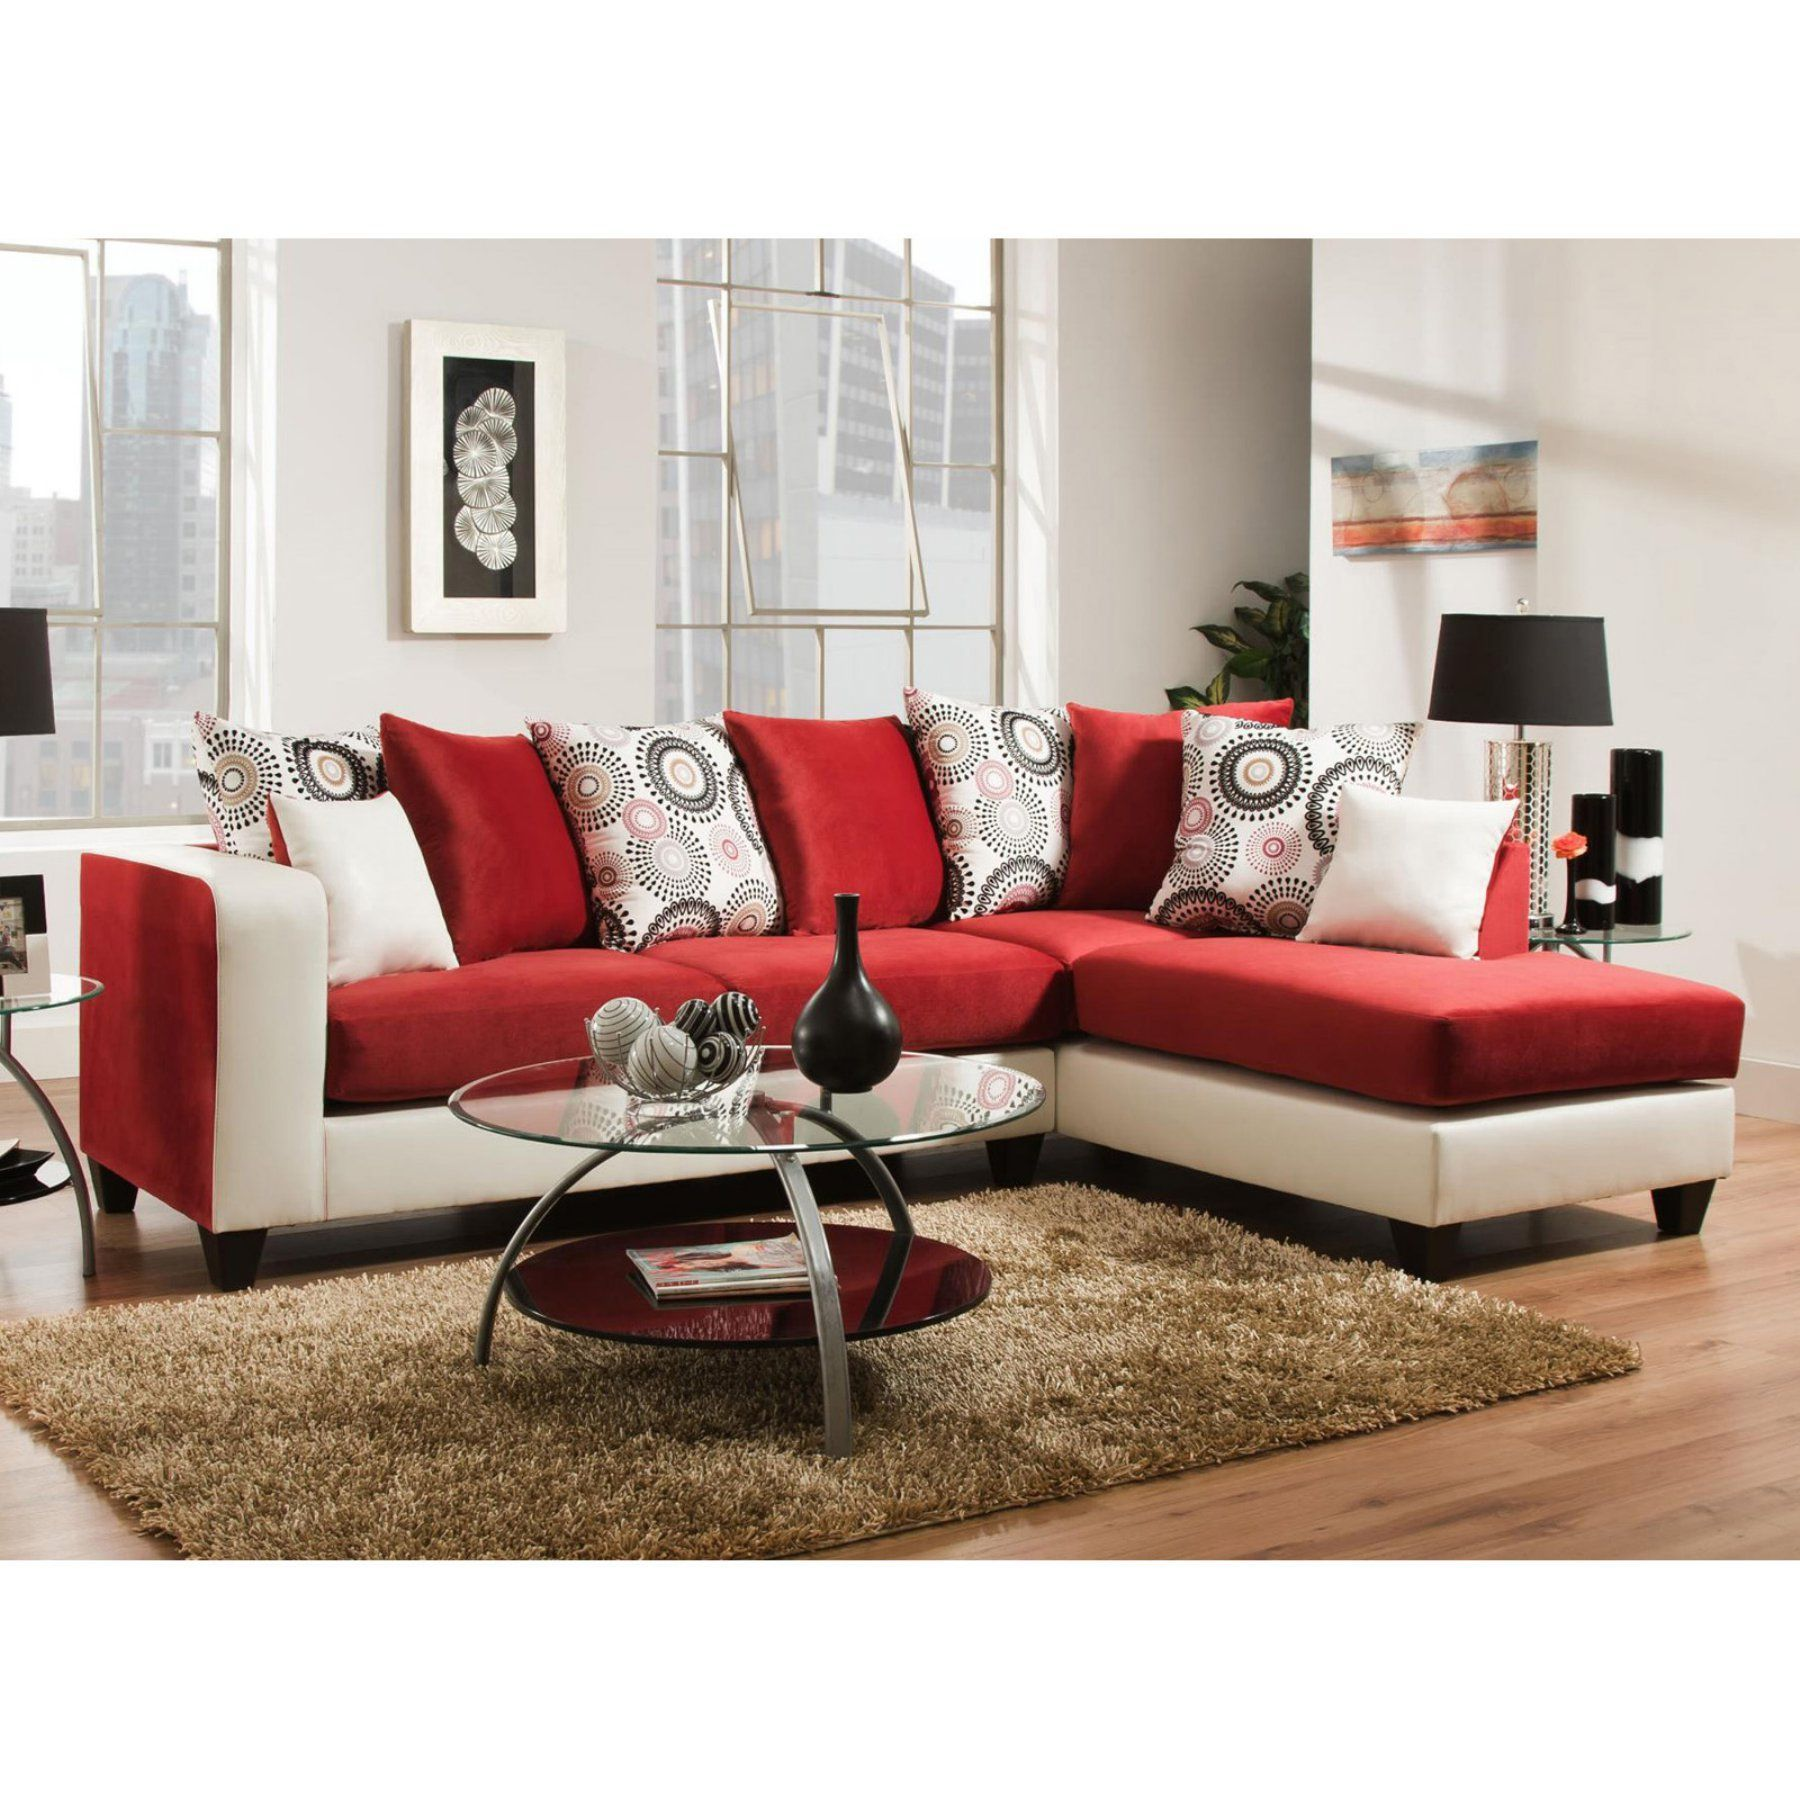 Chelsea Home Furniture Ame Sectional Stark White 424124 10 Sec